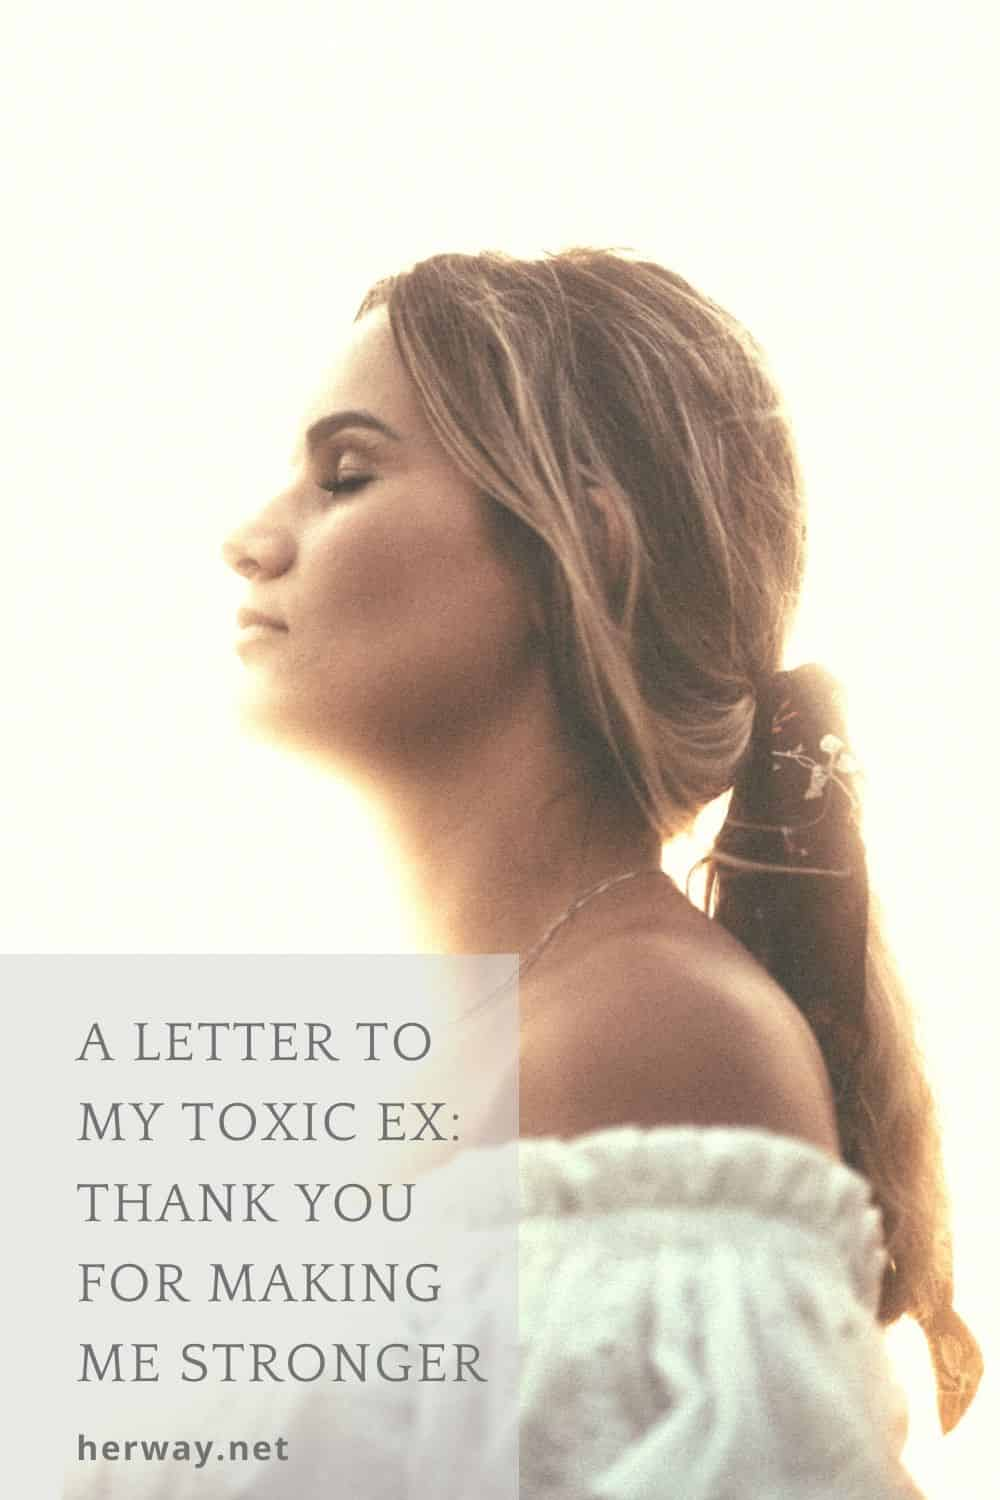 A LETTER TO MY TOXIC EX THANK YOU FOR MAKING ME STRONGER